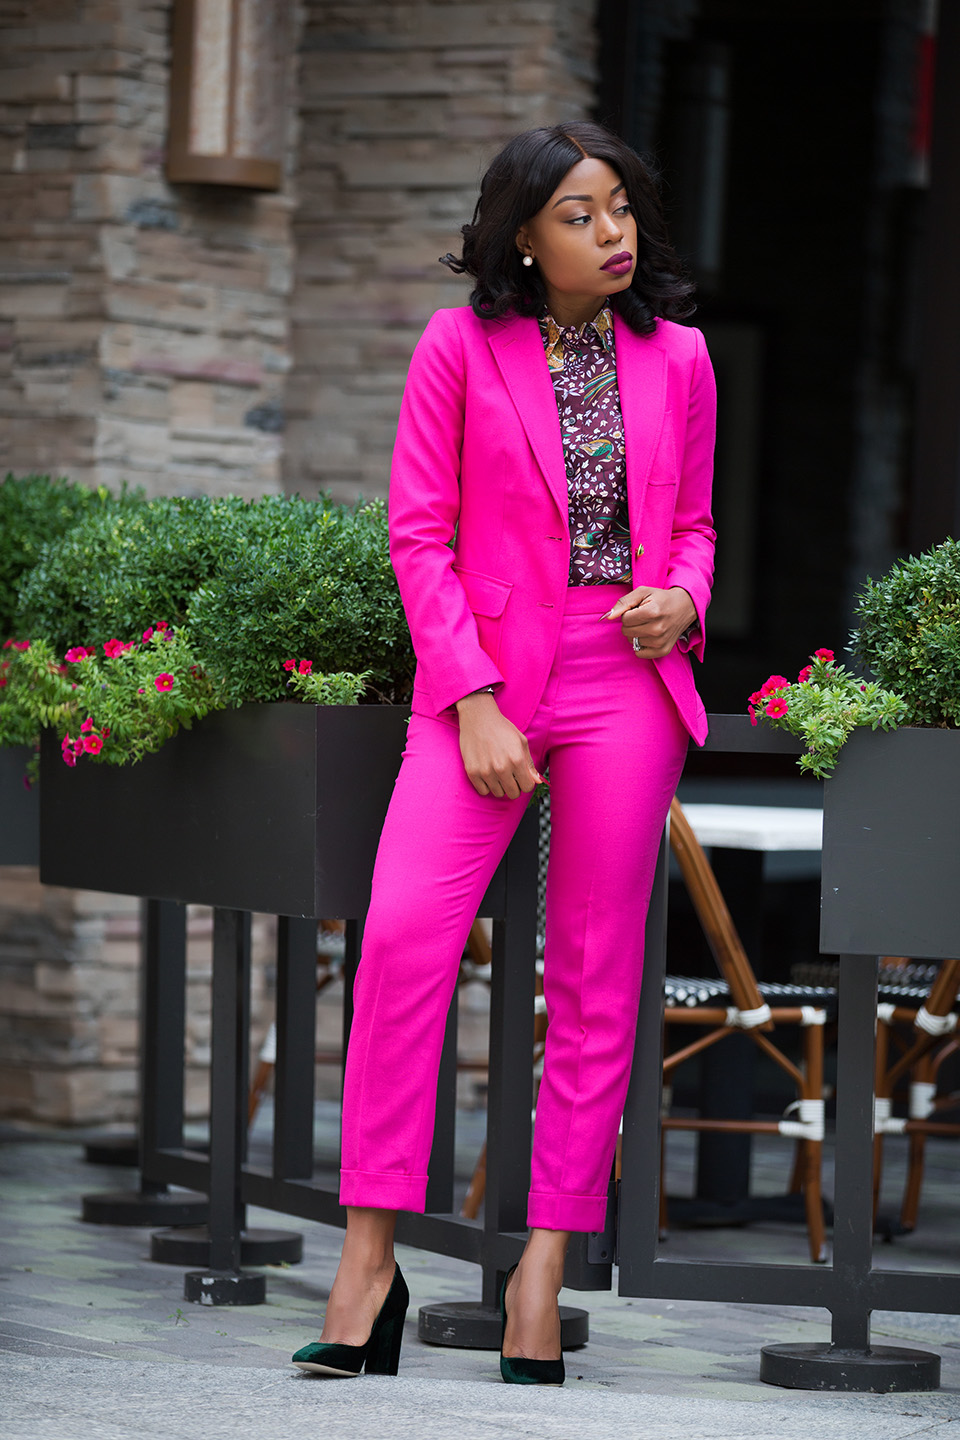 jcrew pink suit, www.jadore-fashion.com